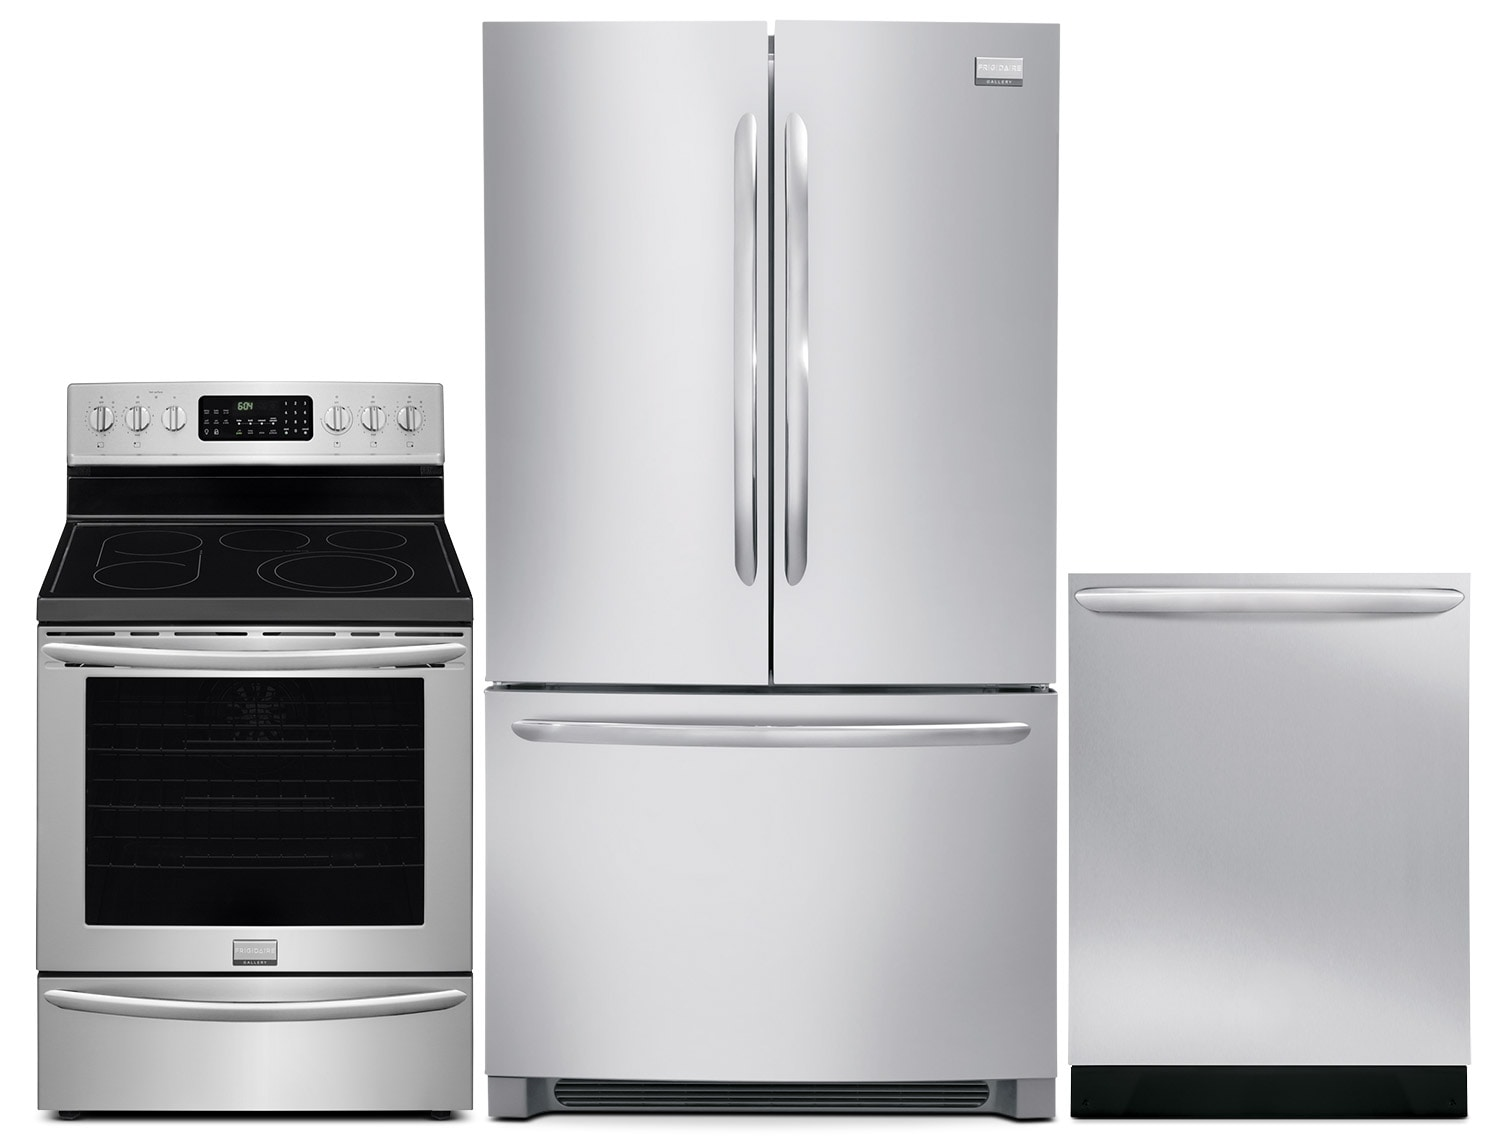 Cooking Products - Frigidaire Gallery 27.8 Cu. Ft. Refrigerator, 5.8 Cu. Ft. Electric Range and Built-In Dishwasher